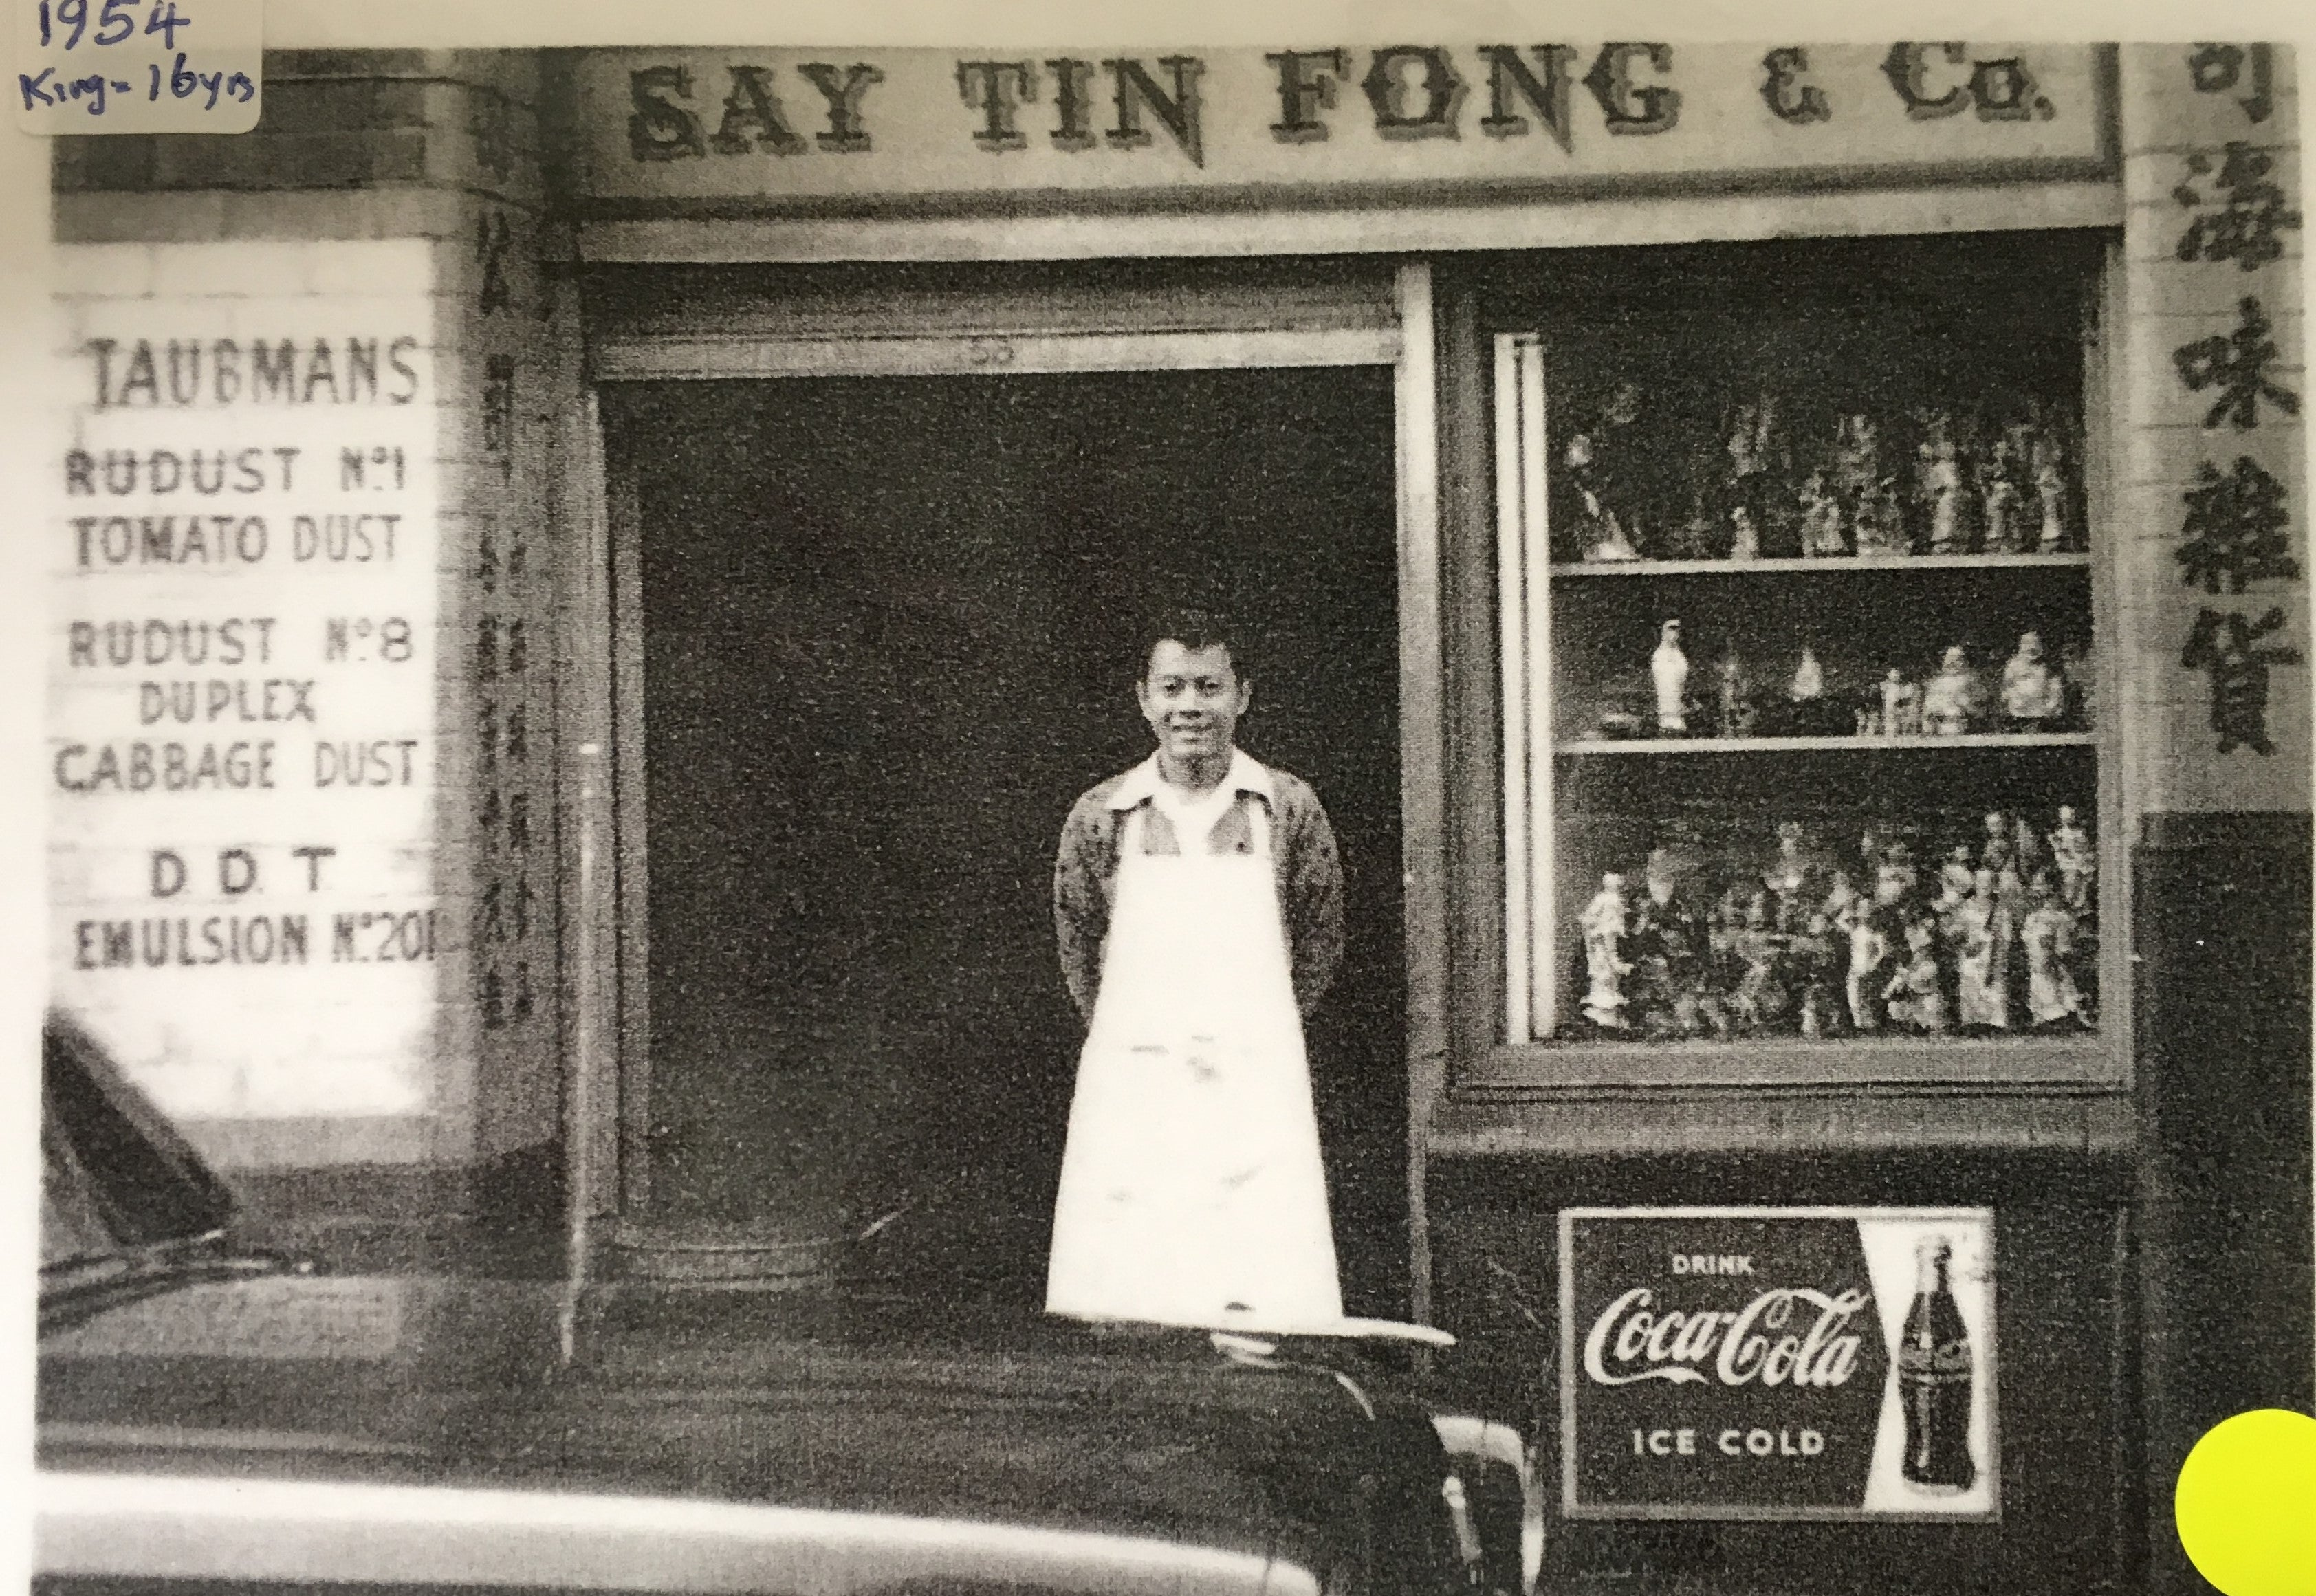 King Fong's family grocery store 'Say Tin Fong' was on 52 Dixon Street